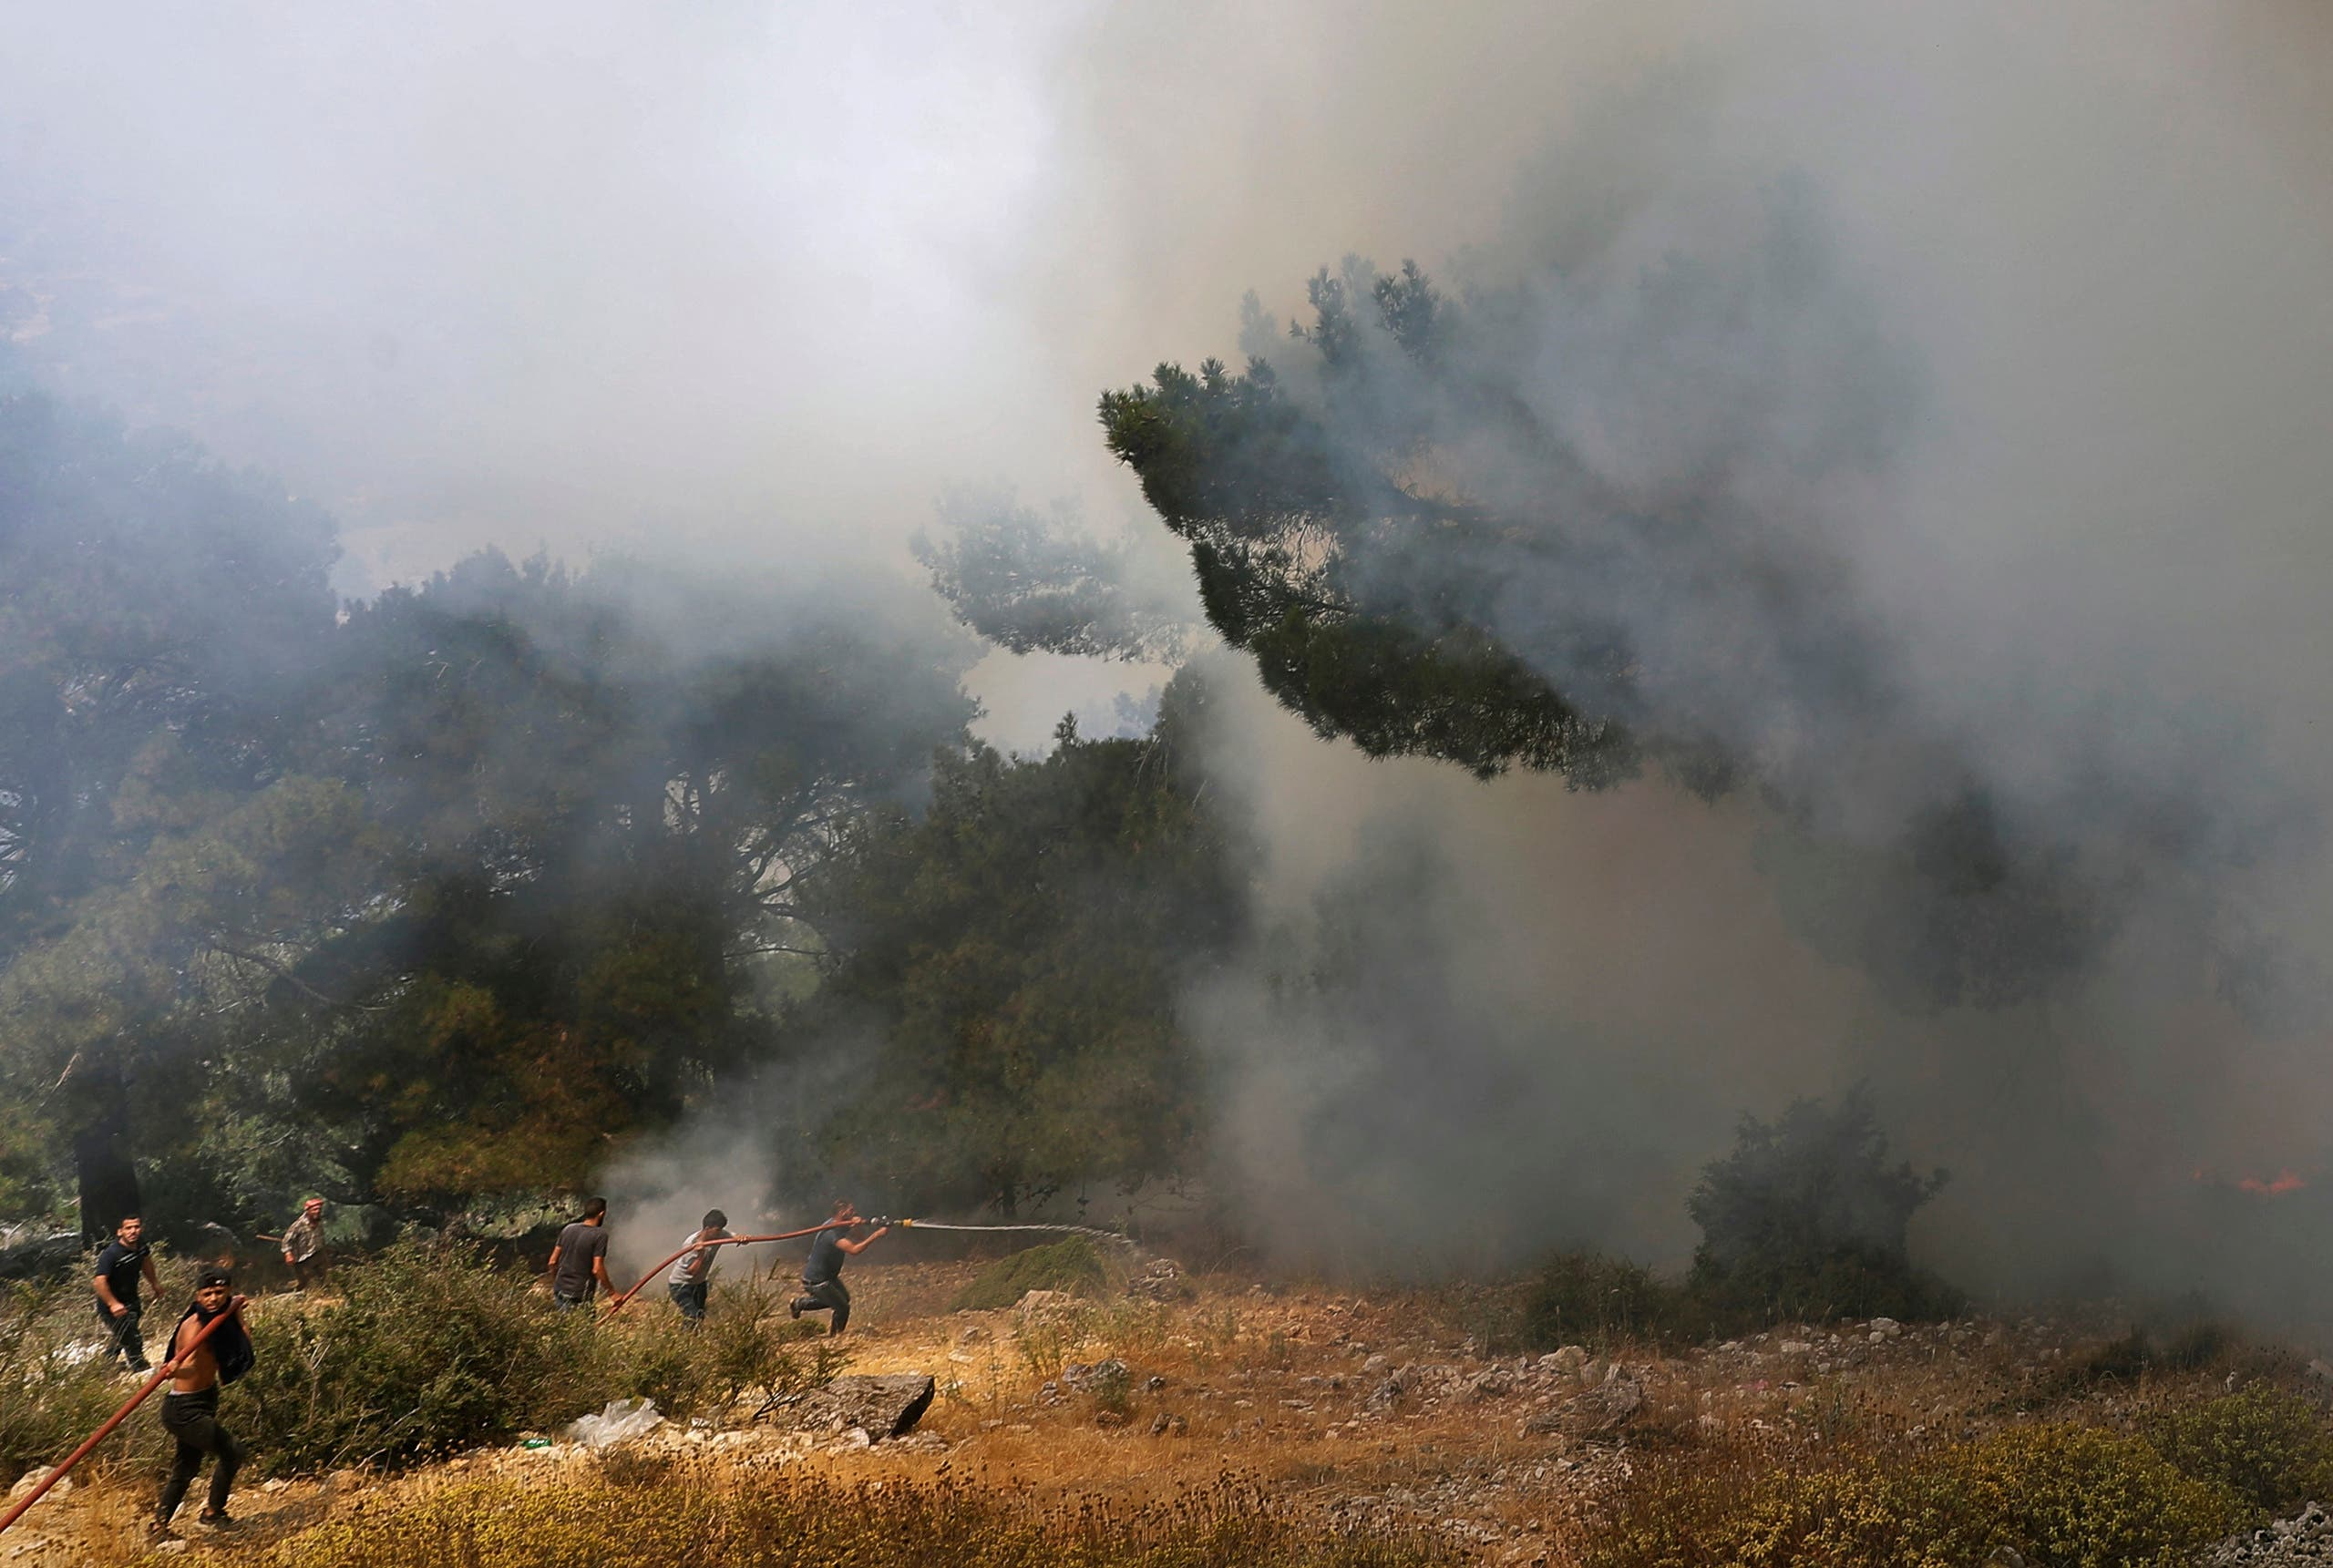 The Civil Defense tries to put out the fires